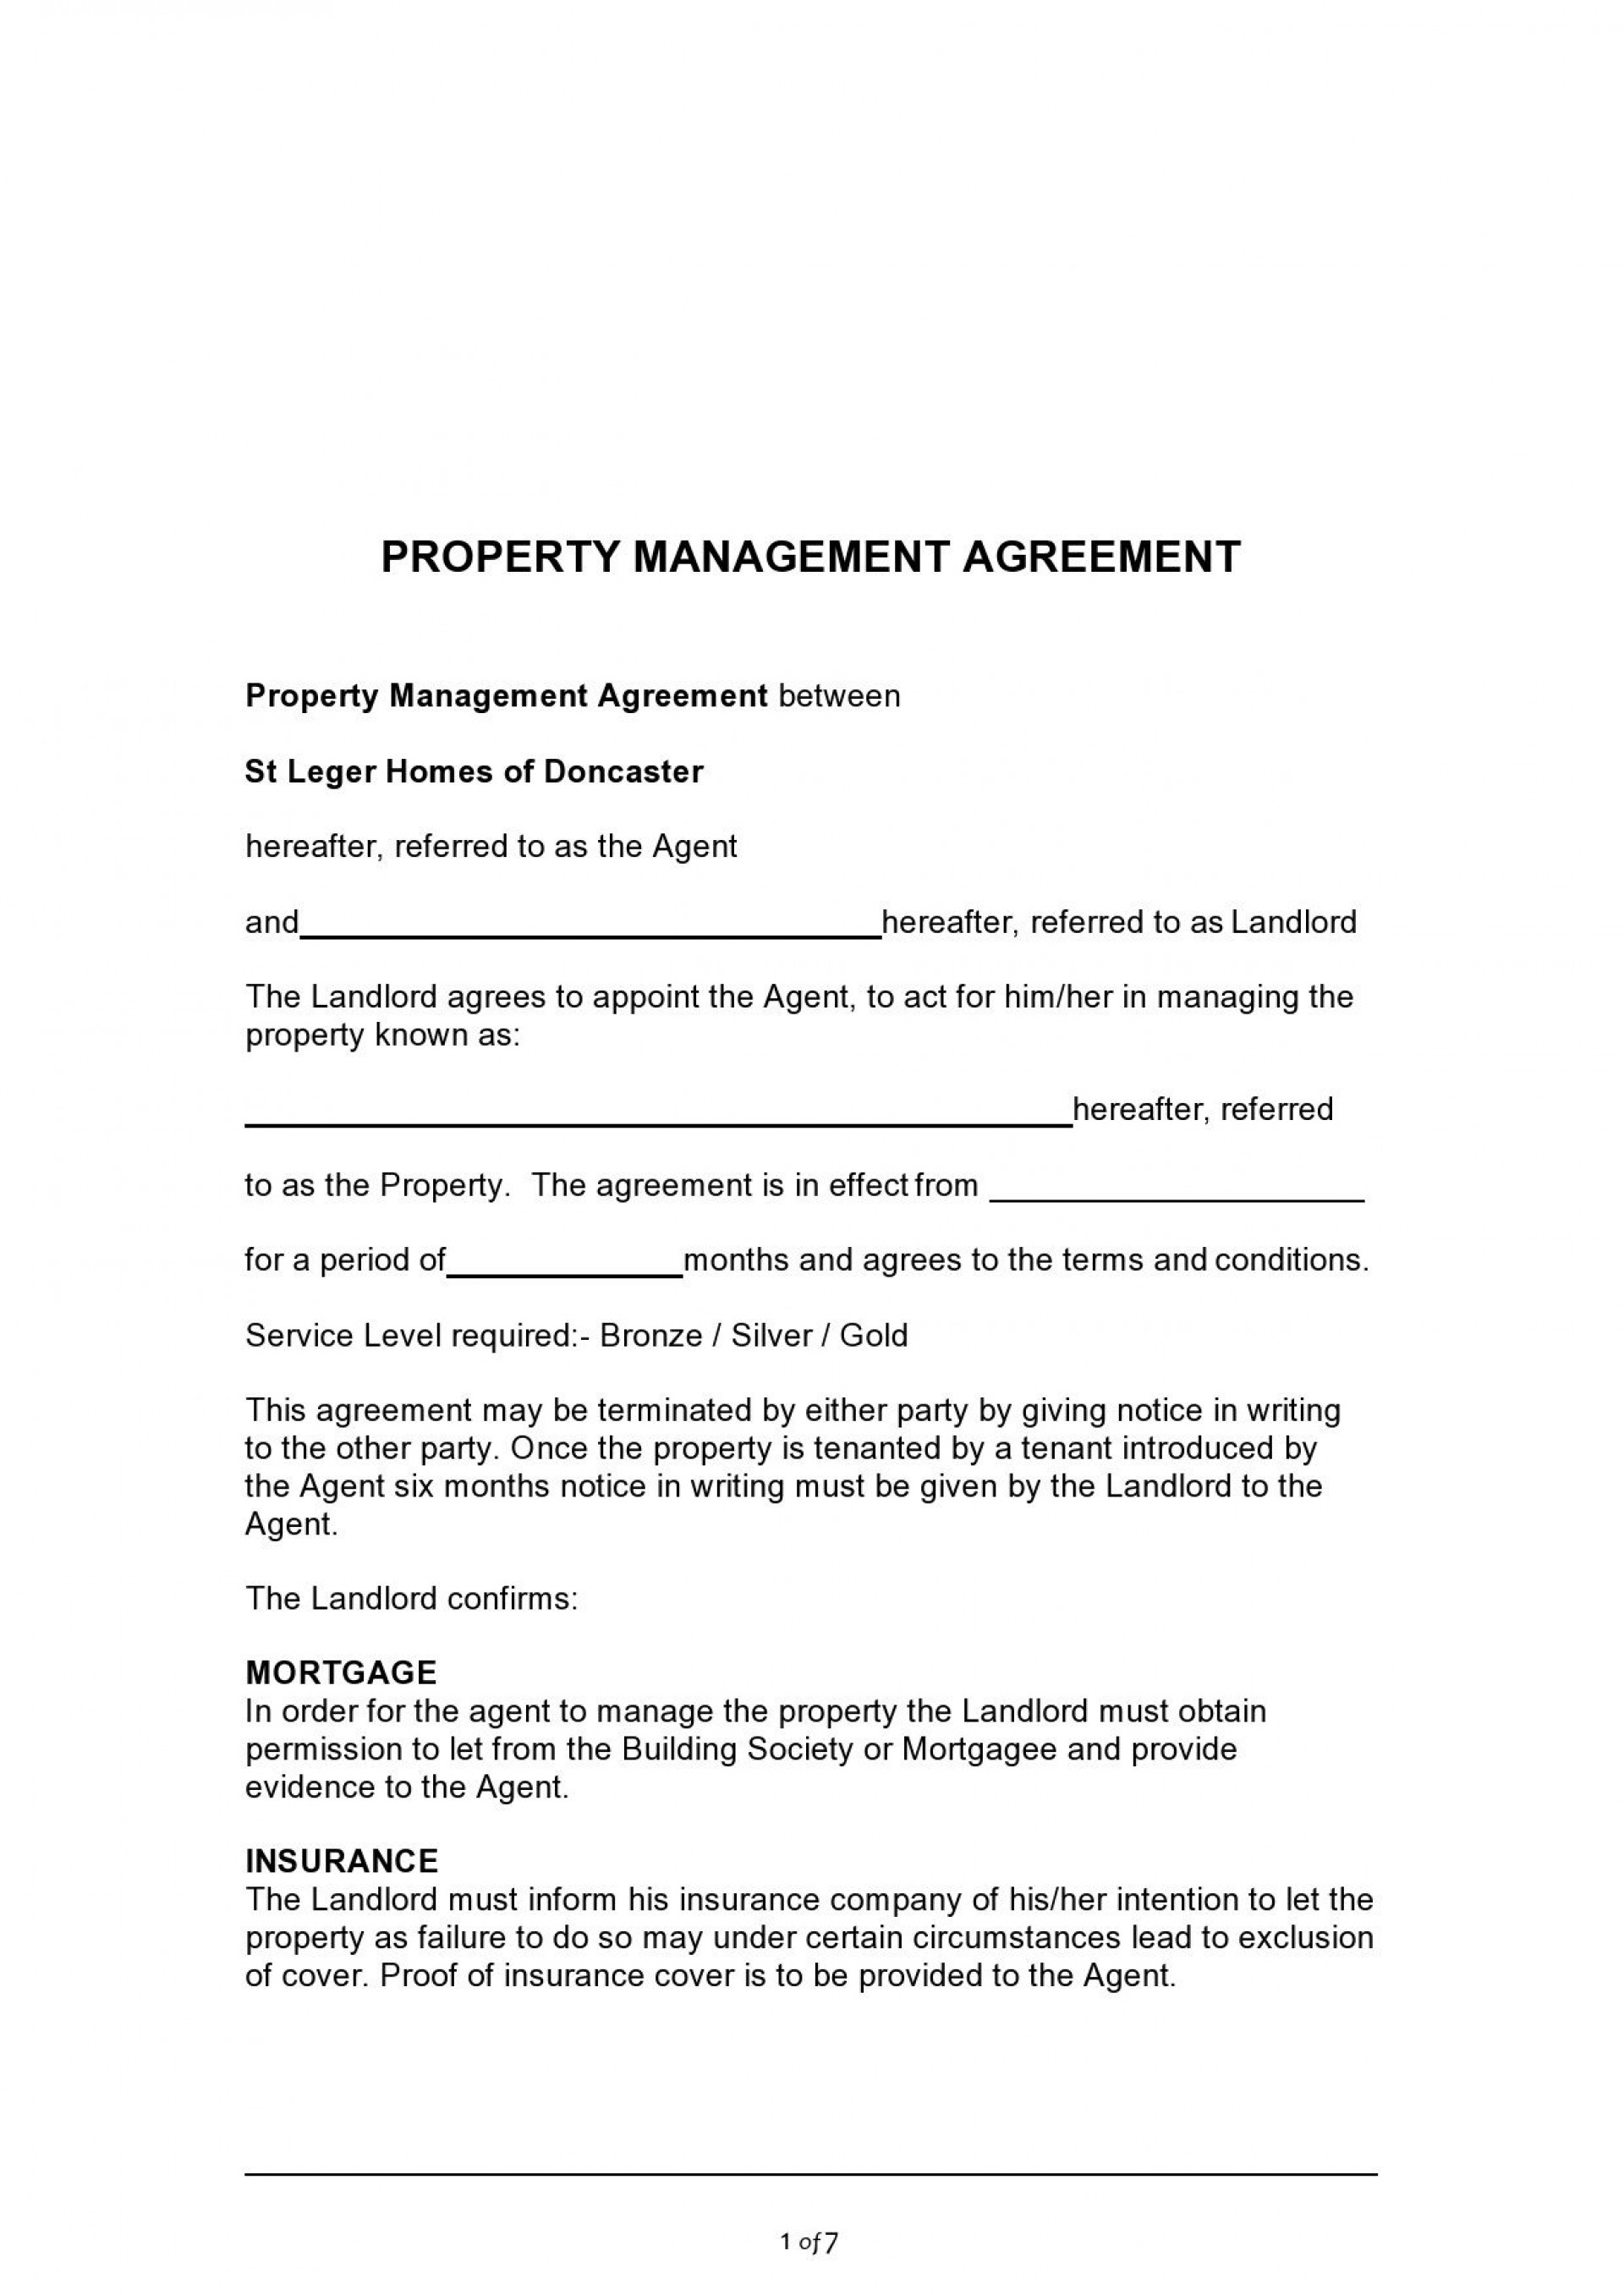 007 Formidable Property Management Agreement Template Ontario Highest Clarity  Contract1920